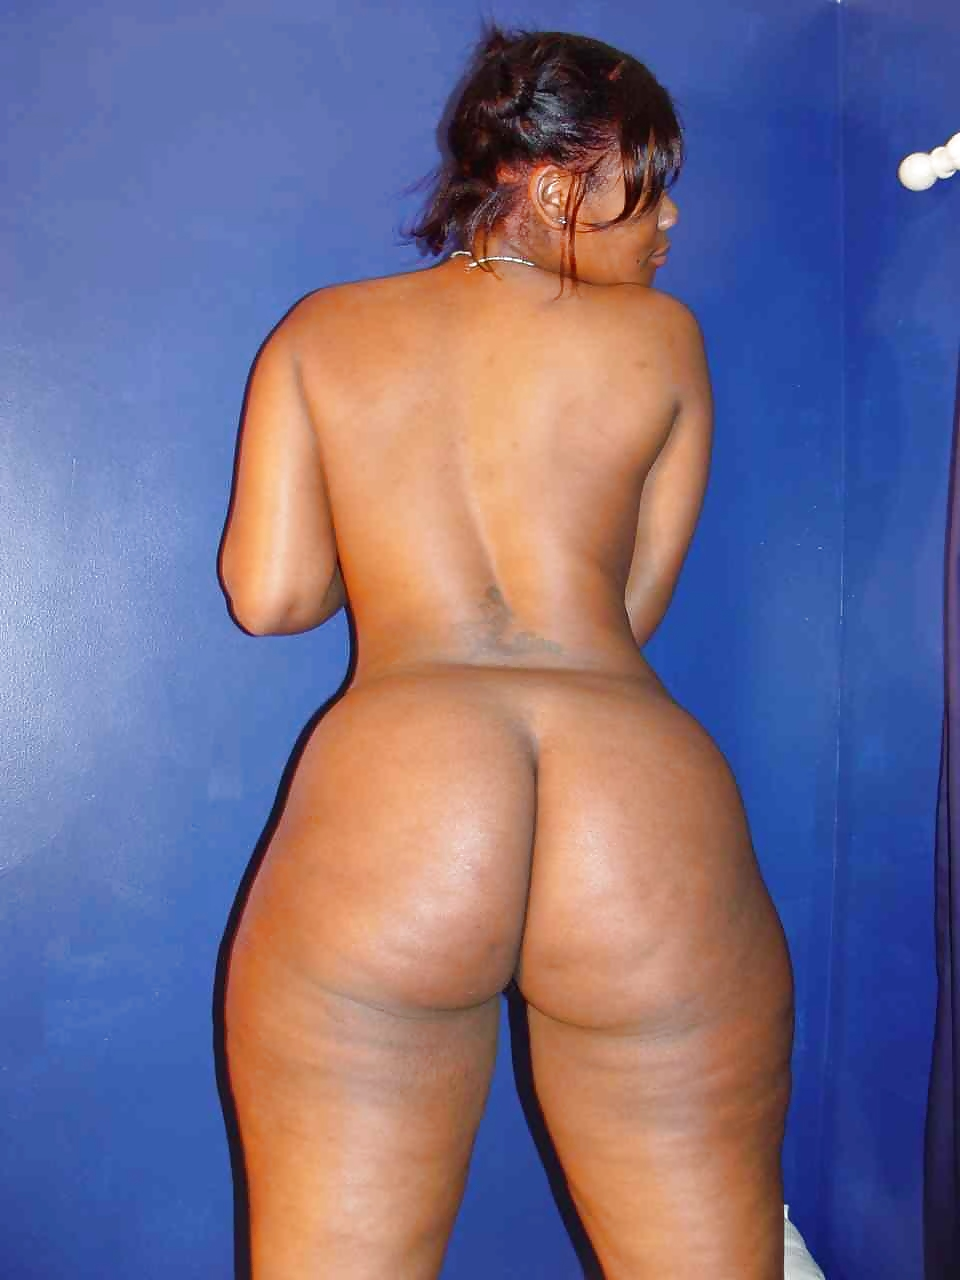 Xxx Pawg Pics, Free Fat Ass Porn Galery, Sexy Pawg Clips